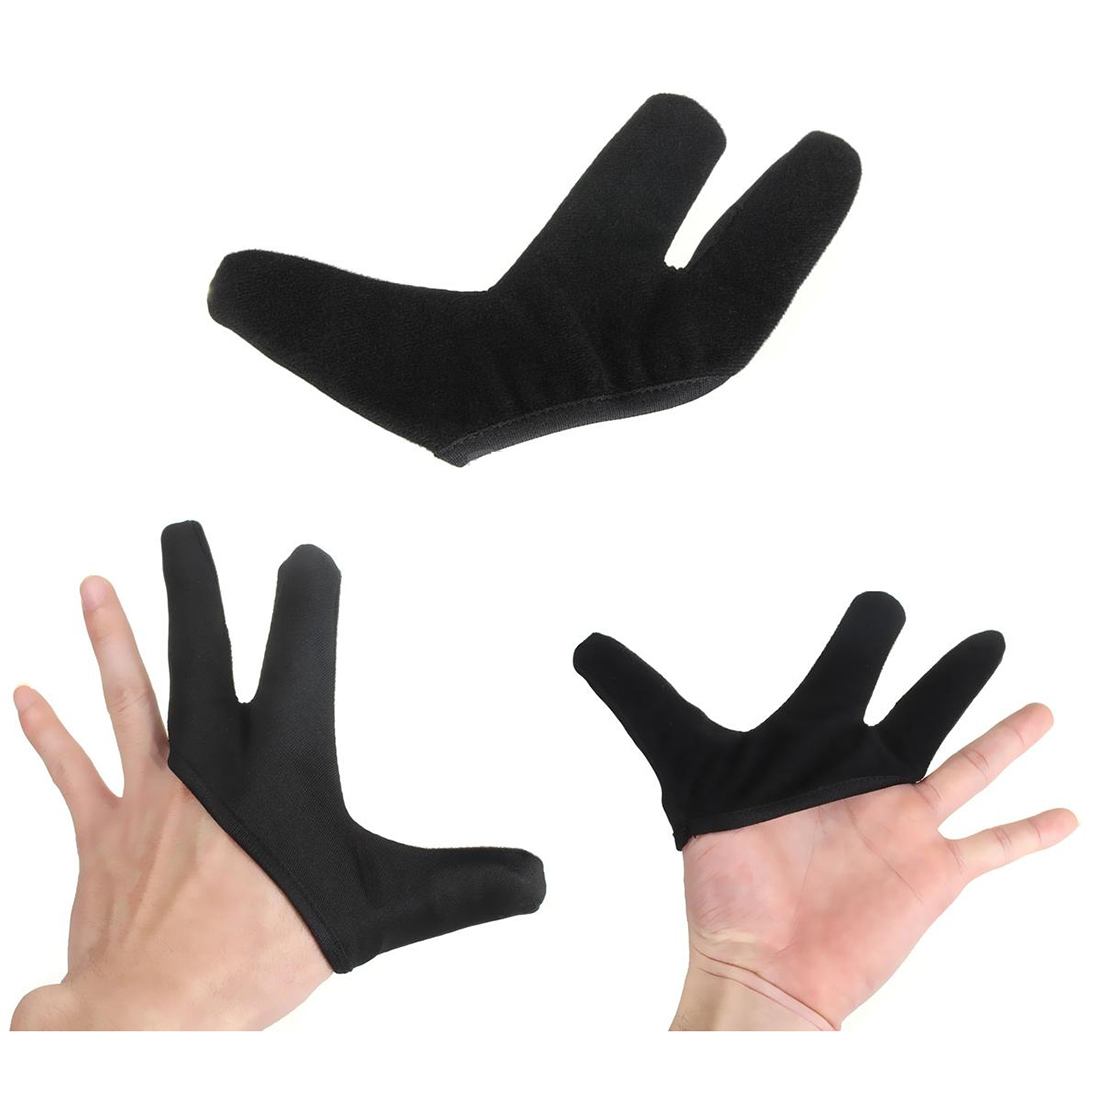 Protective Gloves Heat Protection Protective Gloves Hairdresser Glove New